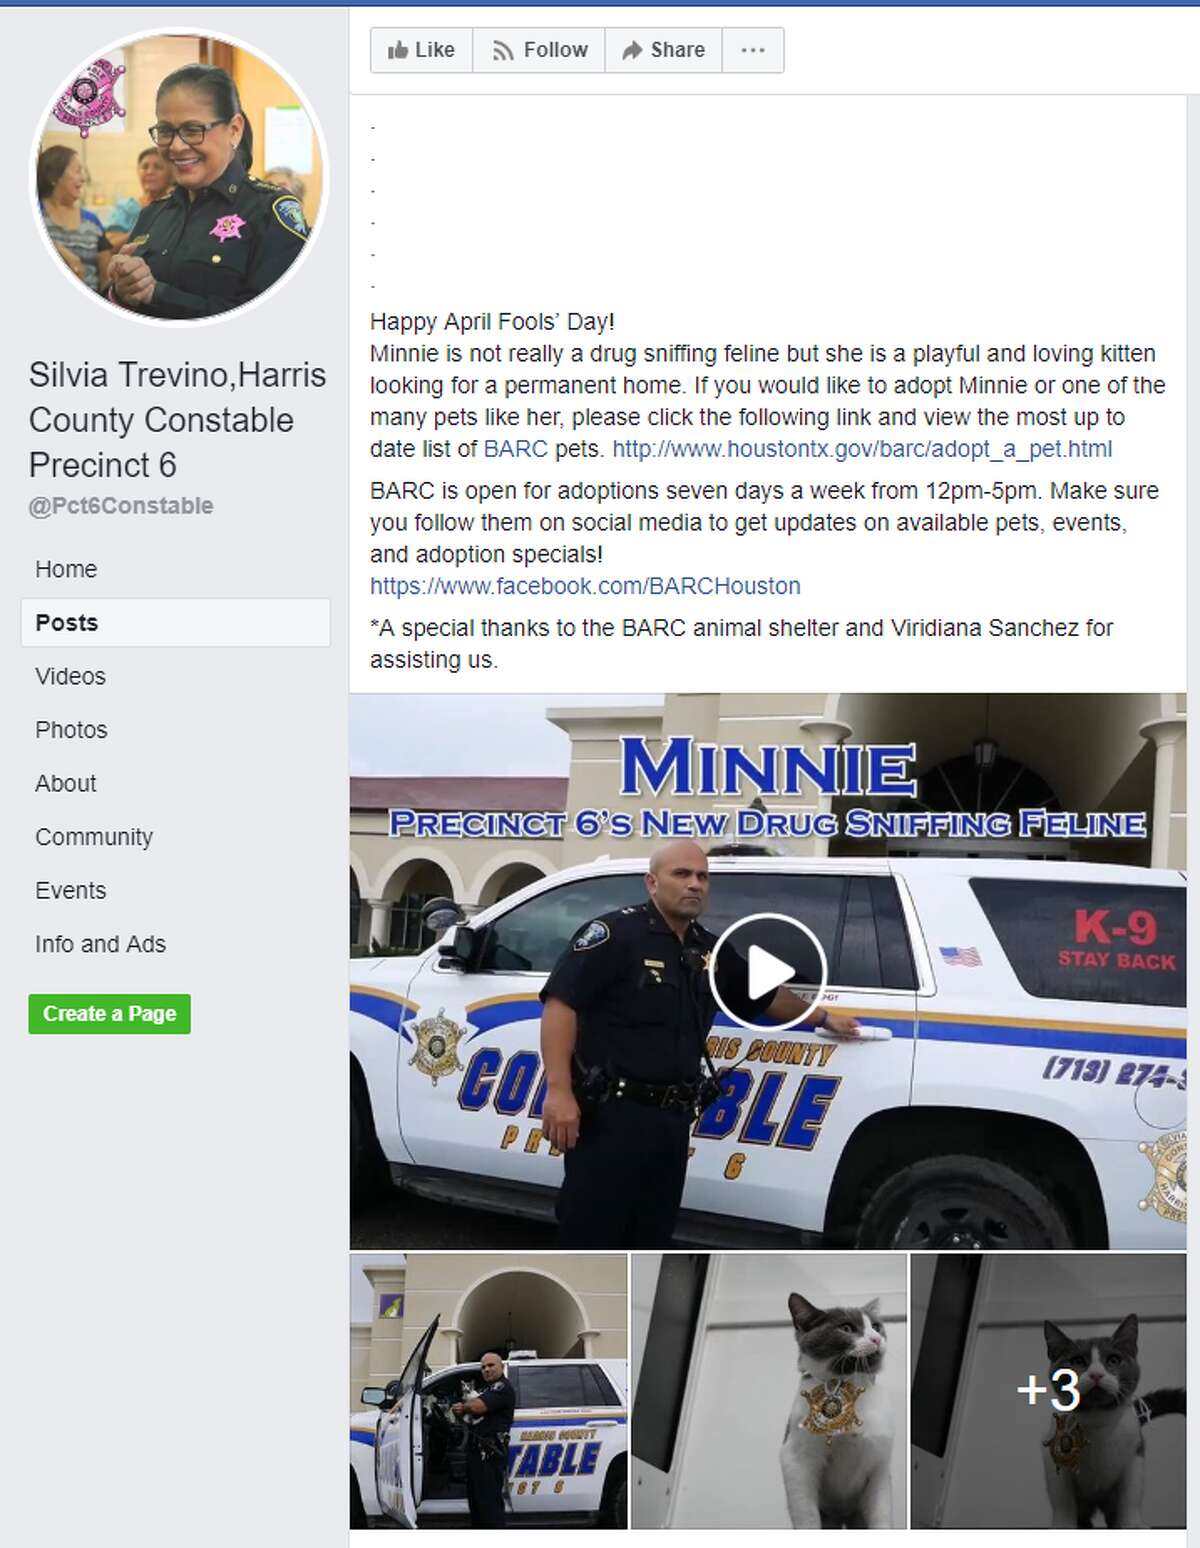 """Harris County Constable Precinct 6 posted on Facebook """"Due to the success of our drug detection K9 Ka'ro, Precinct 6 has decided to add a drug-sniffing feline to our team. """"Minnie"""" will be the first drug-sniffing feline to work for a Harris County Law Enforcement agency and we couldn't be more honored to have her."""""""